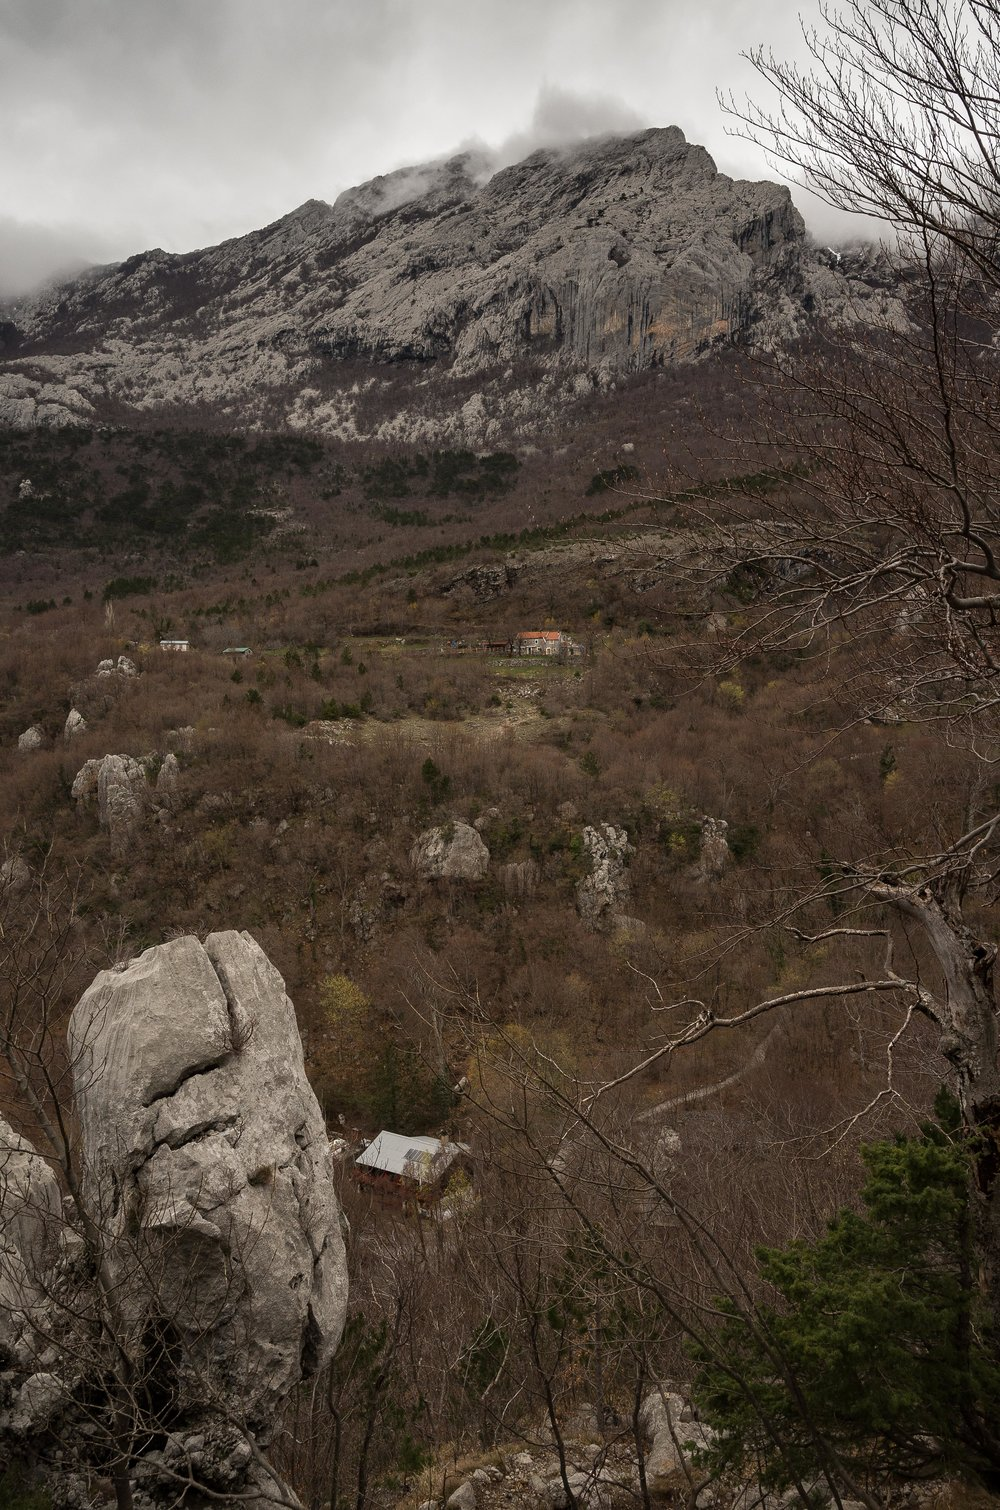 The Paklenica hut with Ivancev Dom above.